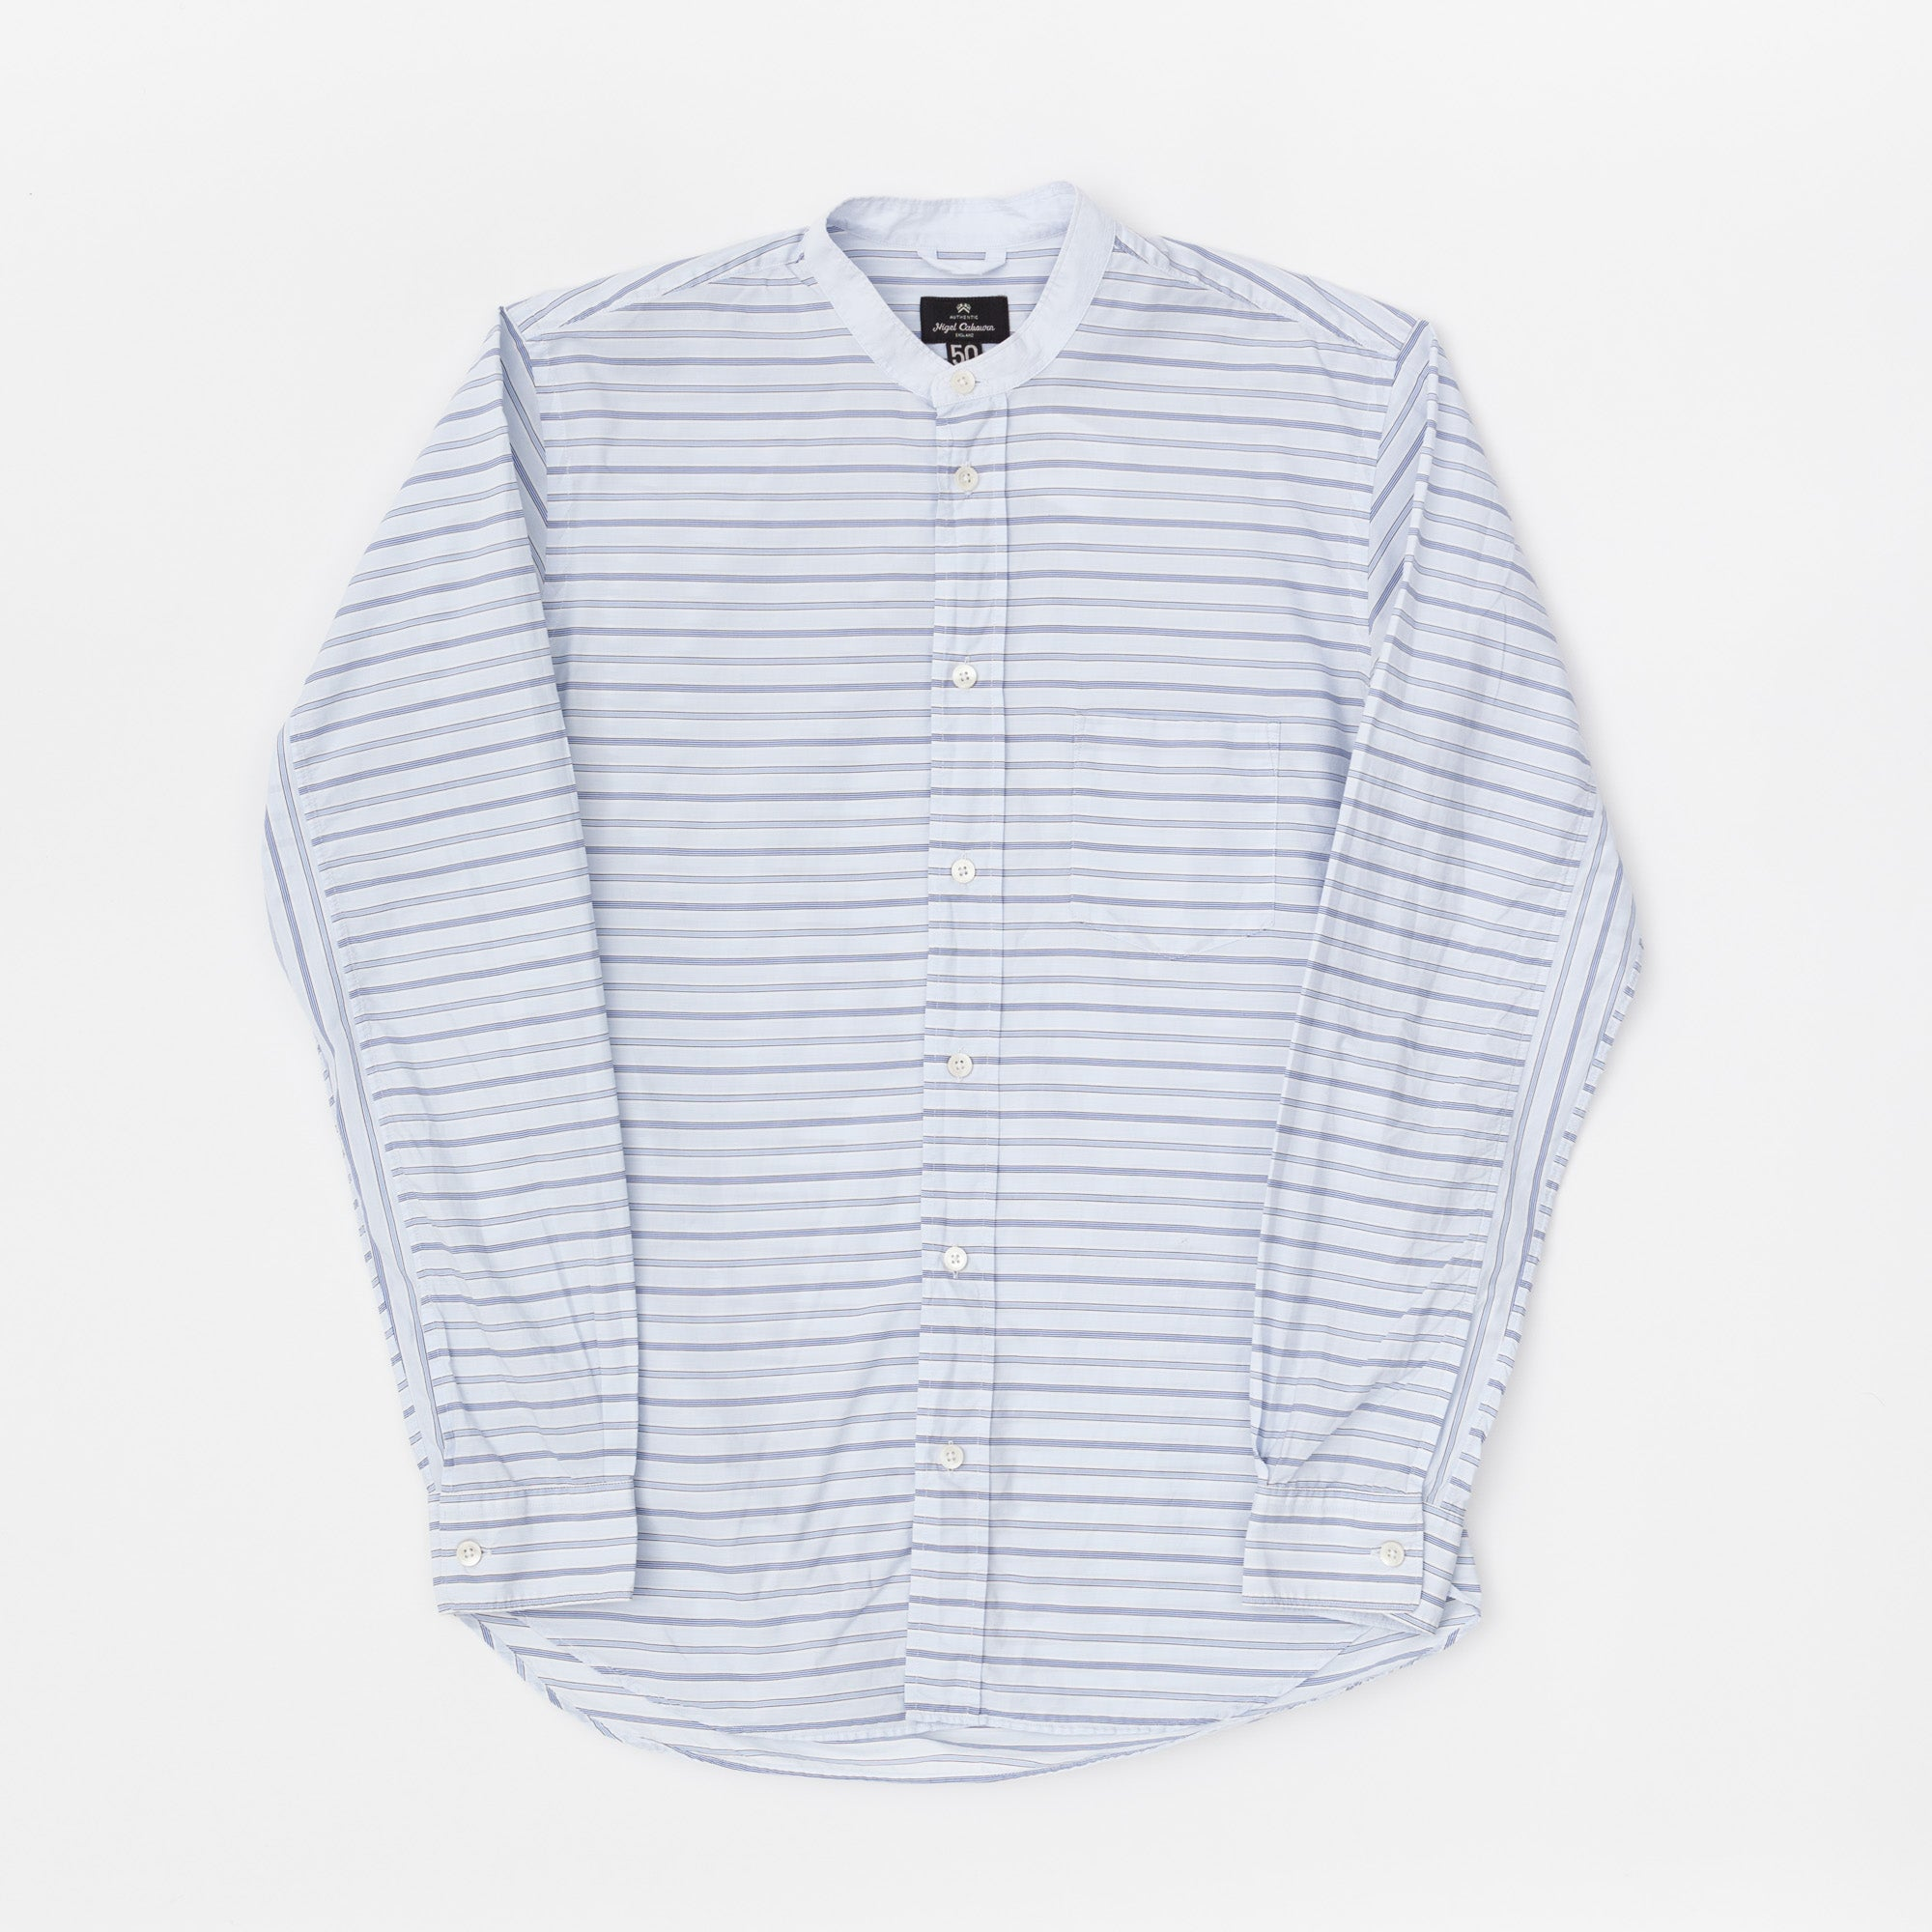 Nigel Cabourn Tunic Shirt